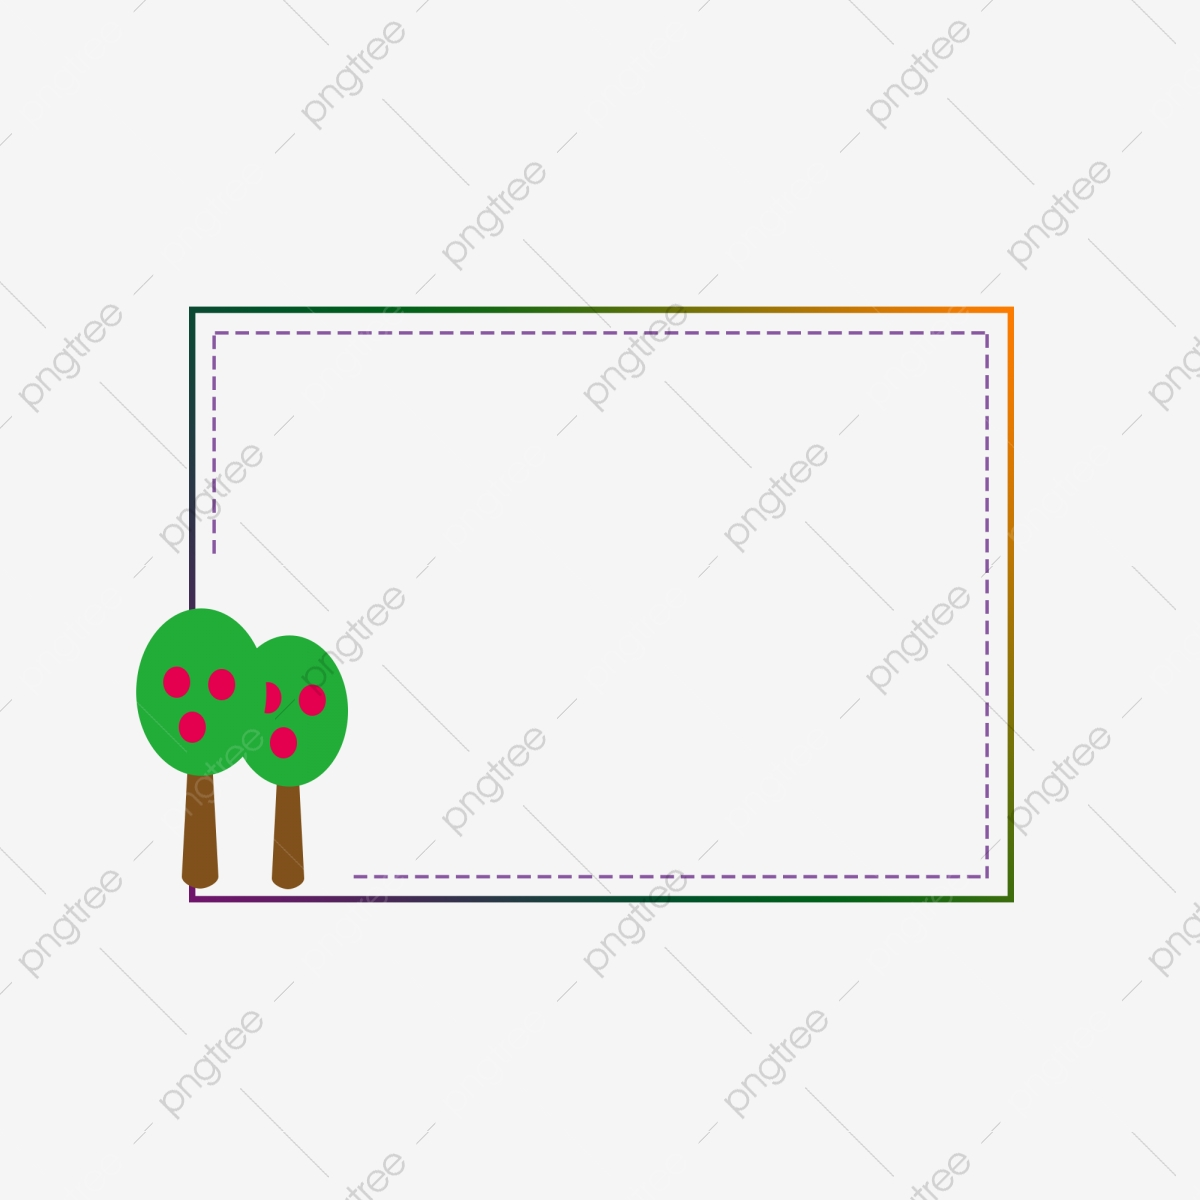 Cartoon Big Tree Border Design Element Cartoon Big Tree Green Tree Png Transparent Clipart Image And Psd File For Free Download Pikbest has 22491 cartoon tree design images templates for free. pngtree